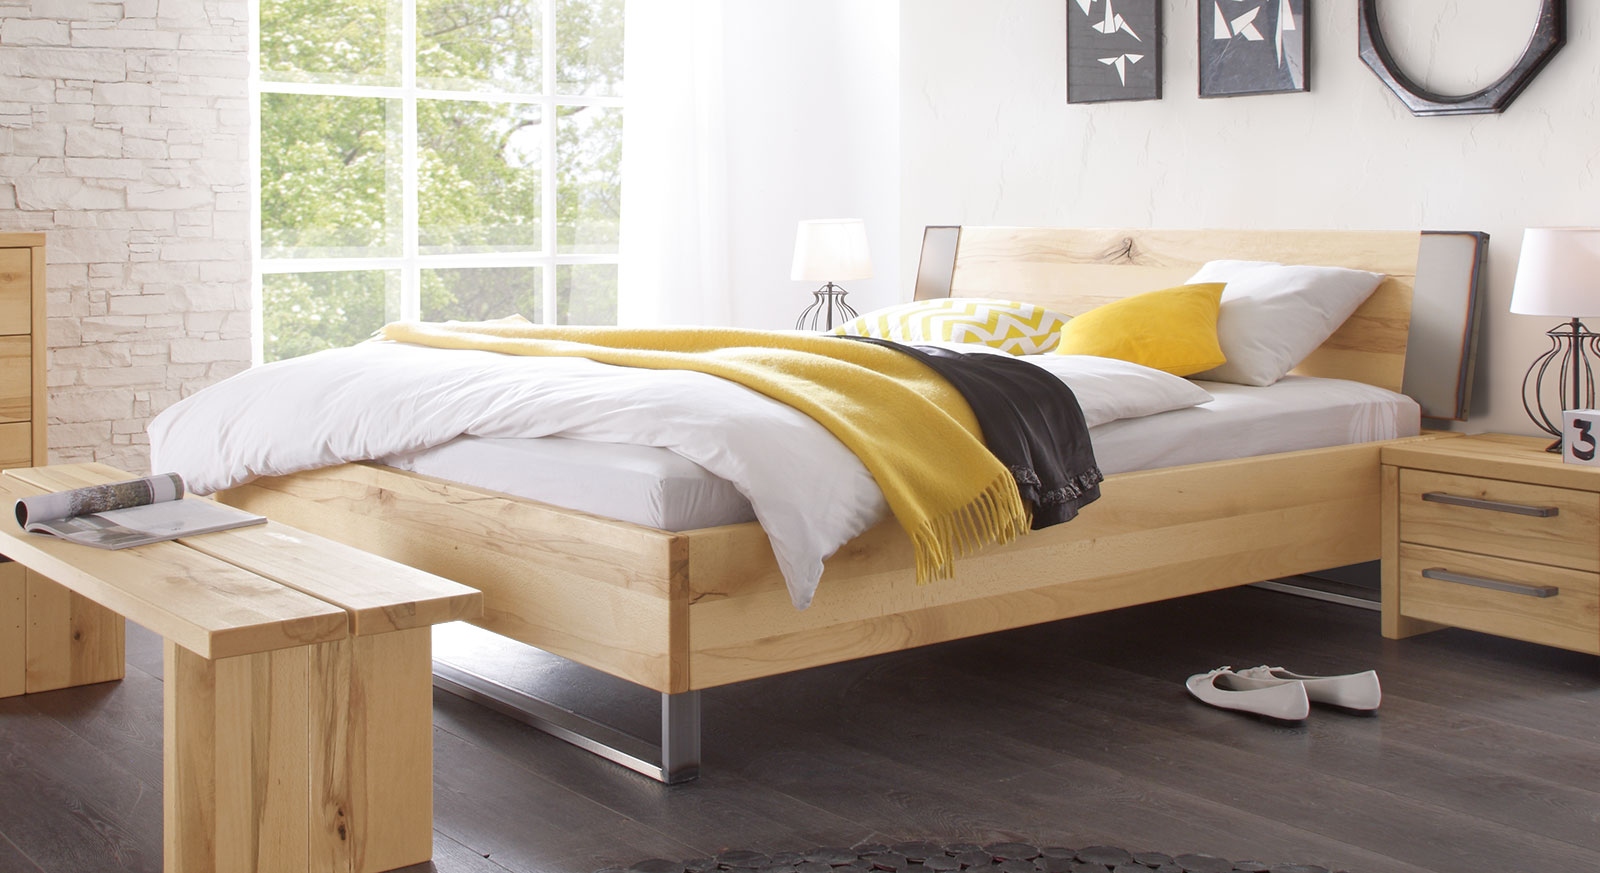 doppelbett in wildbuche mit kufen aus hocherhitztem stahl dondo. Black Bedroom Furniture Sets. Home Design Ideas